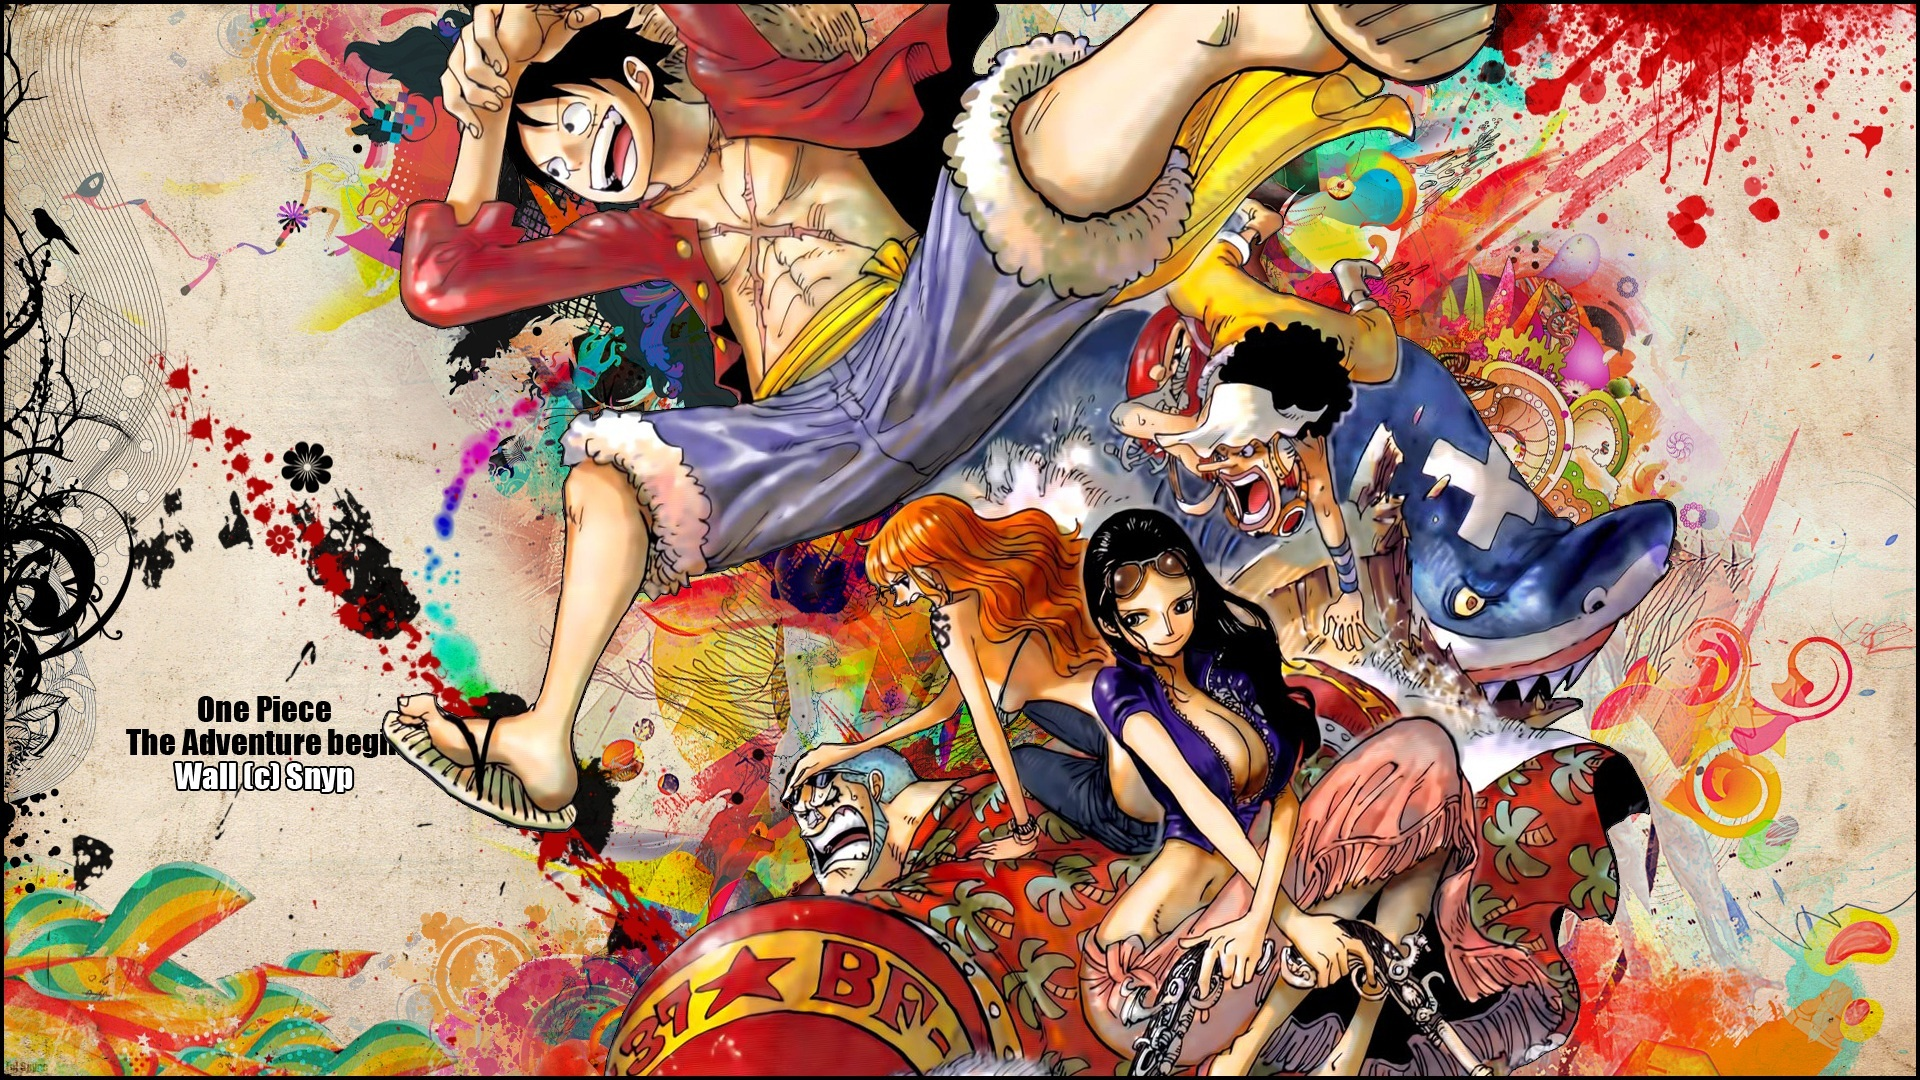 one piece wallpaper background 1920x1080 picture   1920x1080 1920x1080